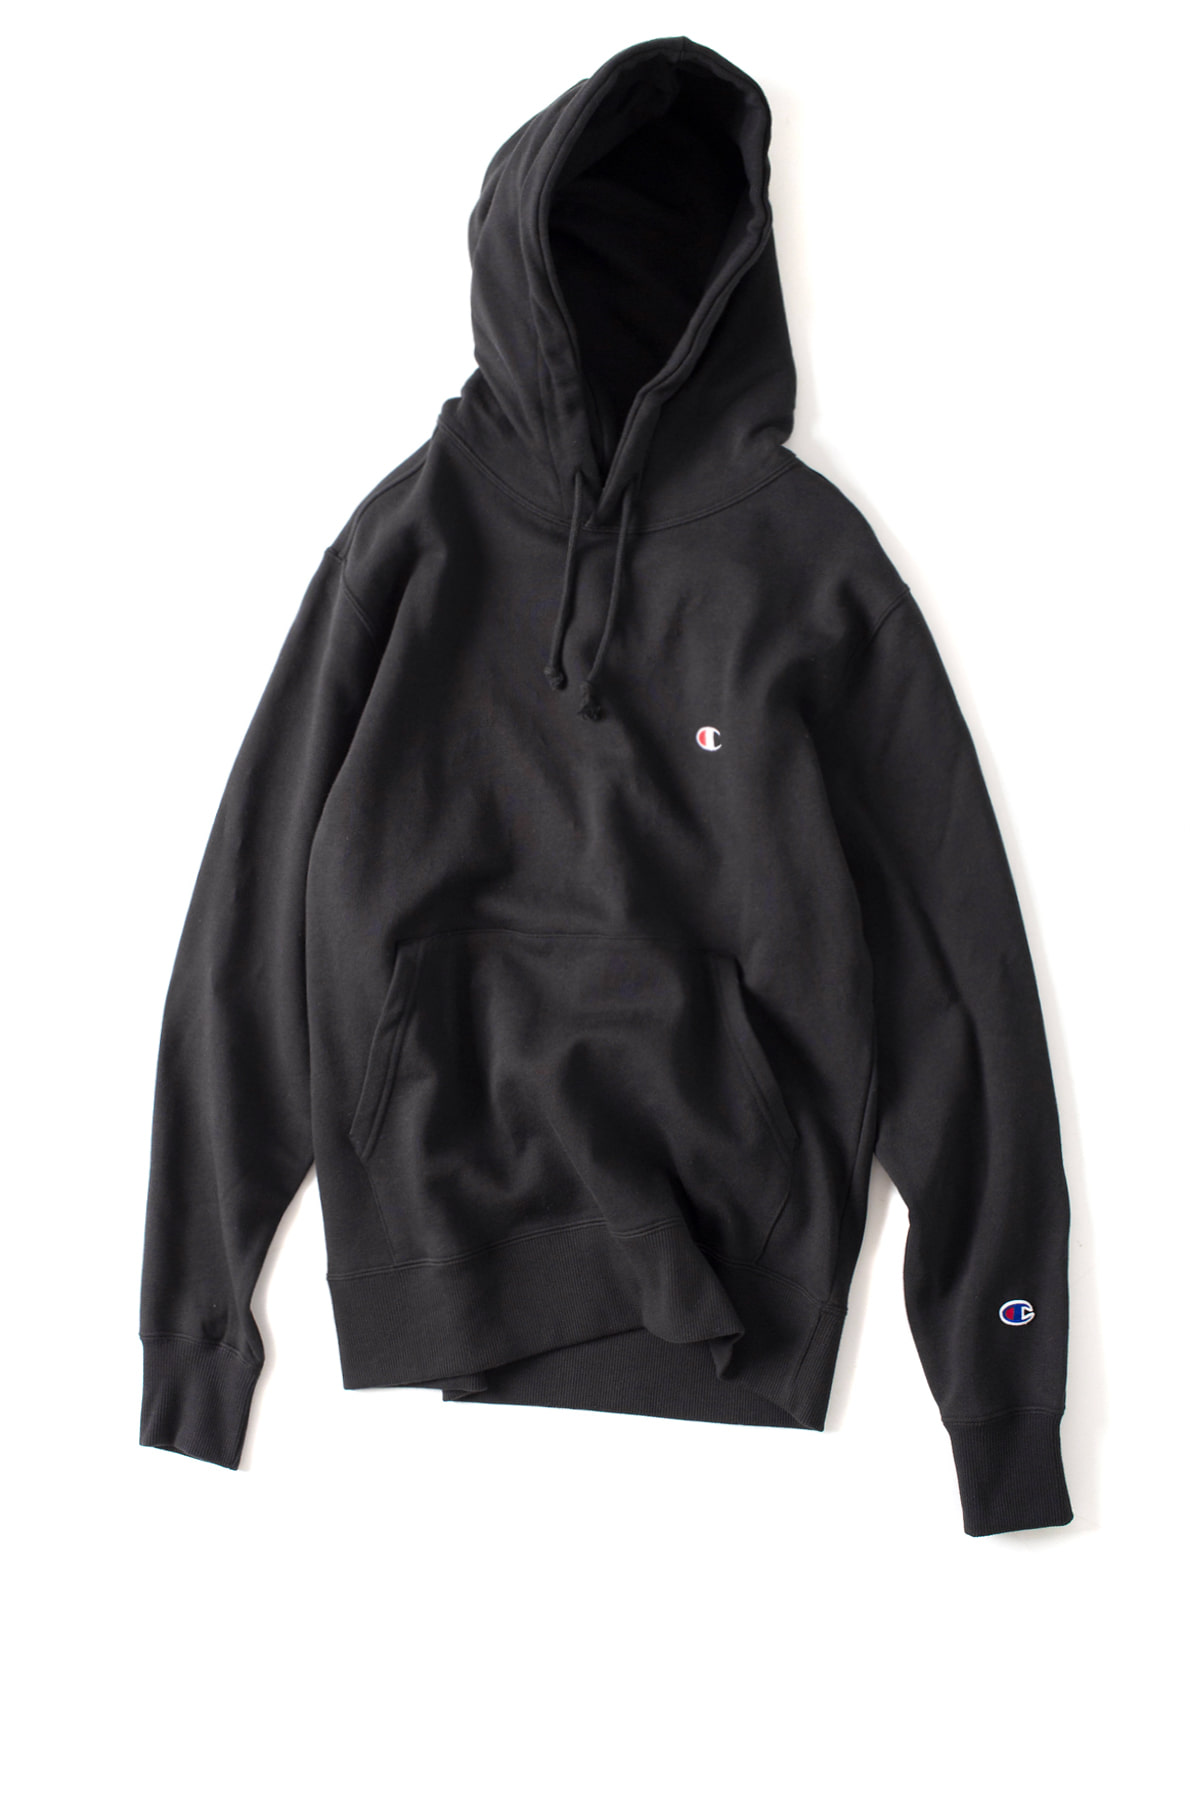 Champion : Basic Pullover Hooded SweatShirt (Black)